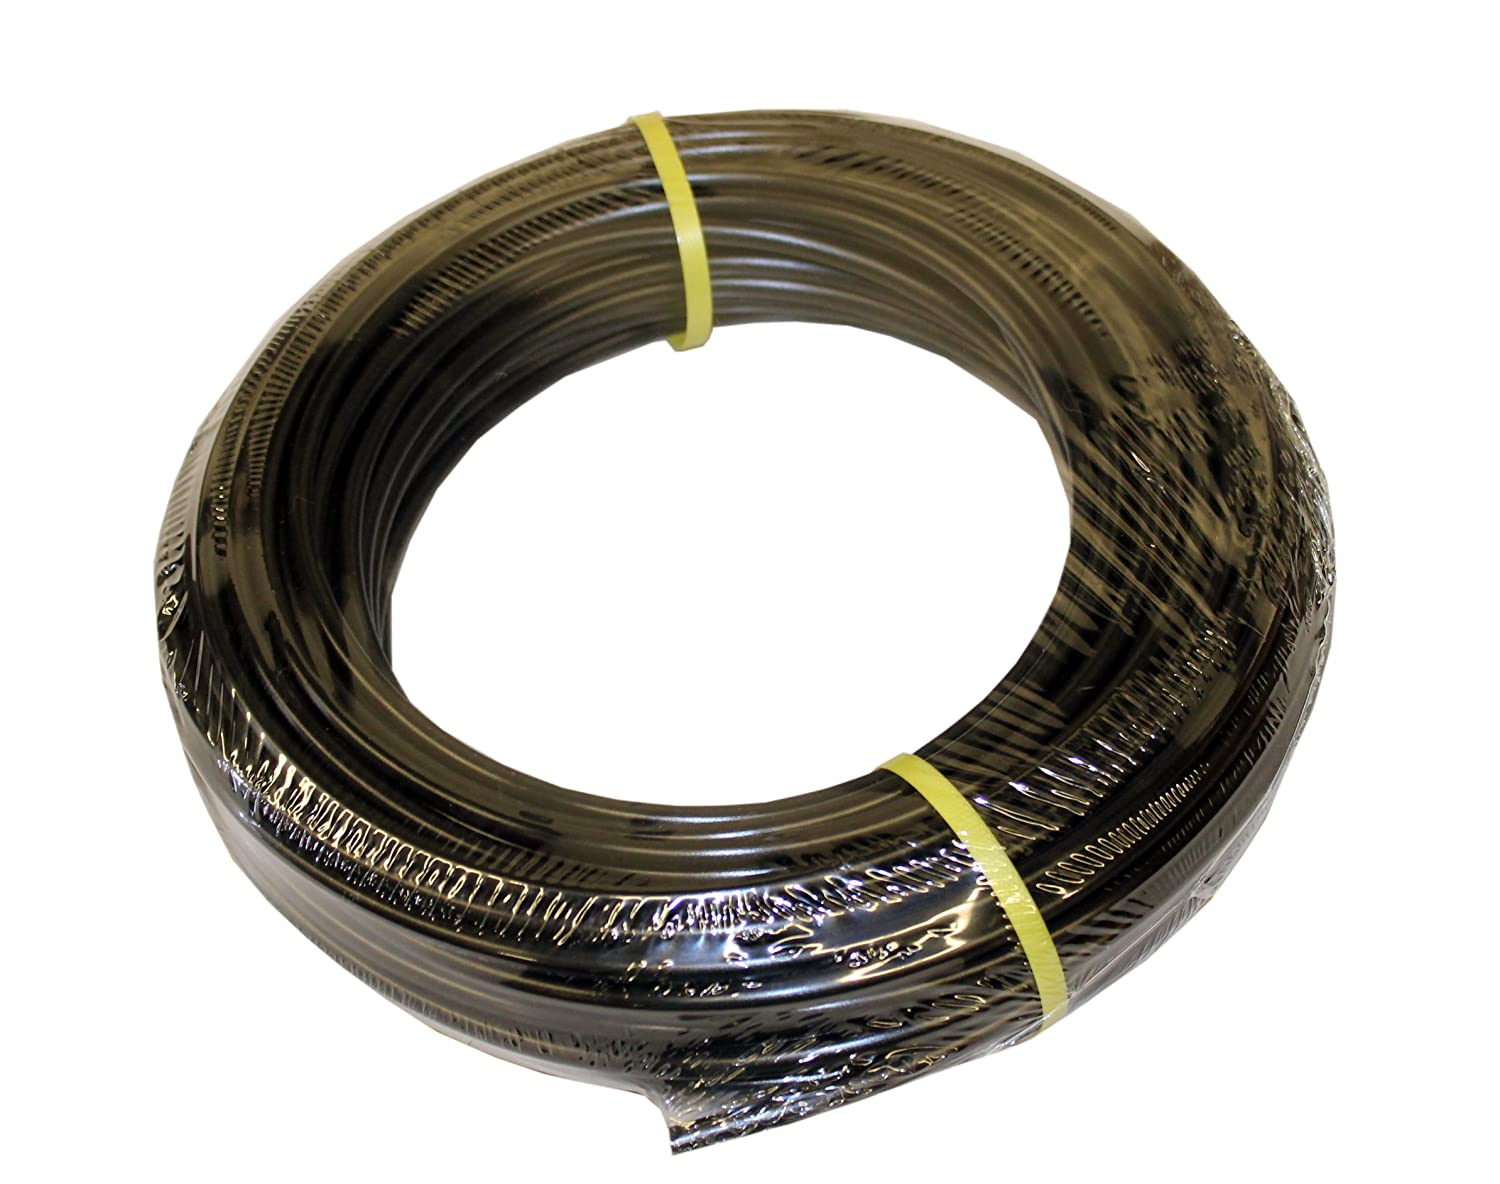 ATP Value-Tube NSF 61 LDPE Plastic Tubing, Black, 3/8' ID x 1/2' OD, 100 feet Length 3/8 ID x 1/2 OD Advanced Technology Products (ATP)